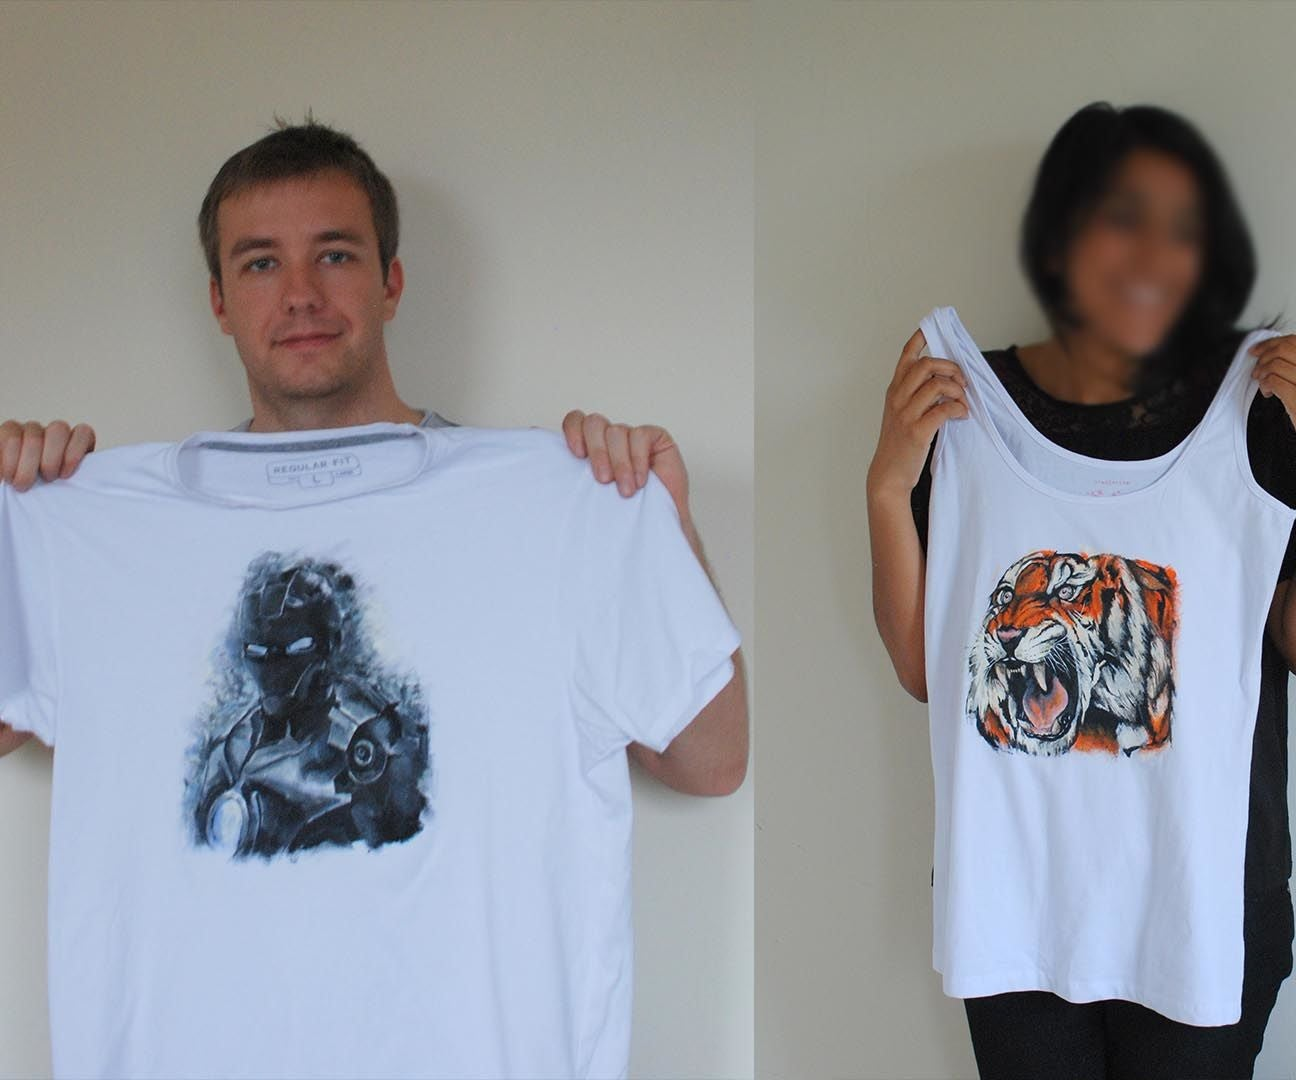 bbfd53d7 Hand Painted T-shirts. : 6 Steps (with Pictures)